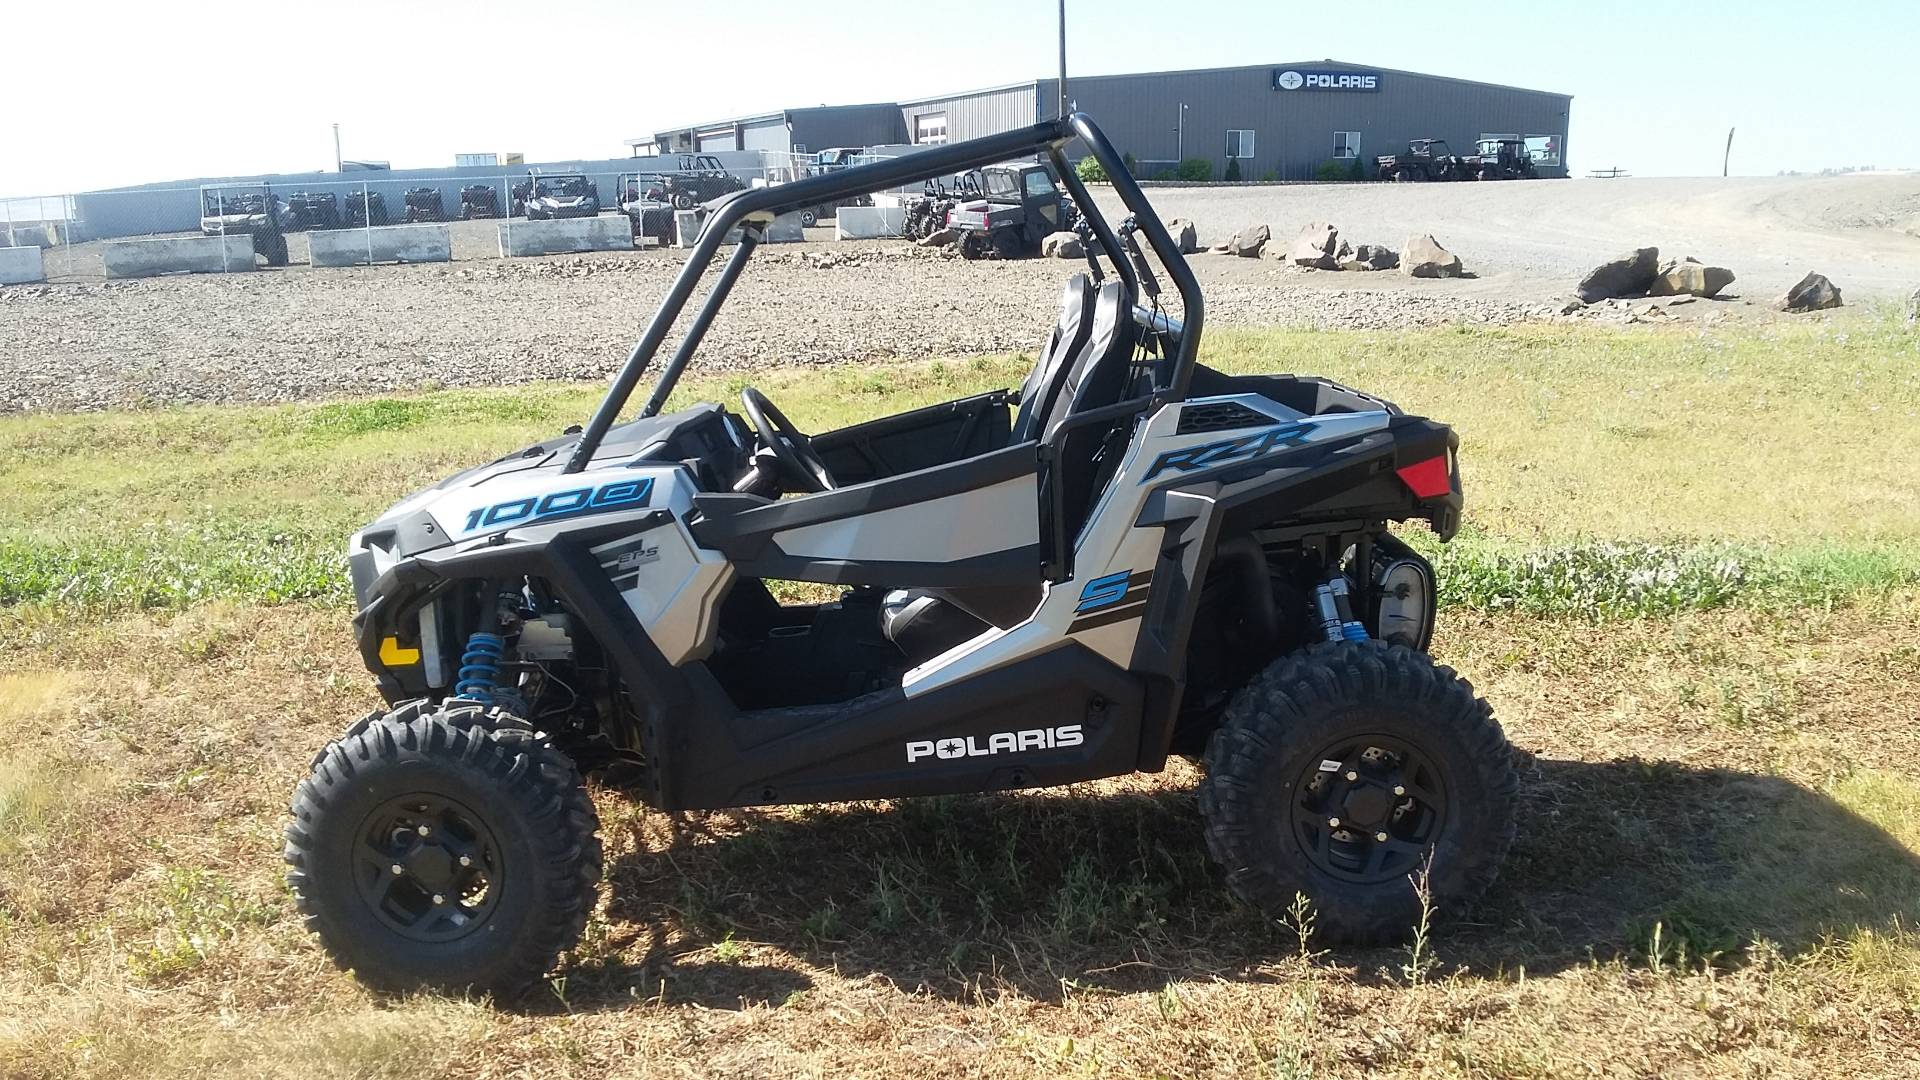 2020 Polaris RZR Trail S 1000 Premium in Cottonwood, Idaho - Photo 2